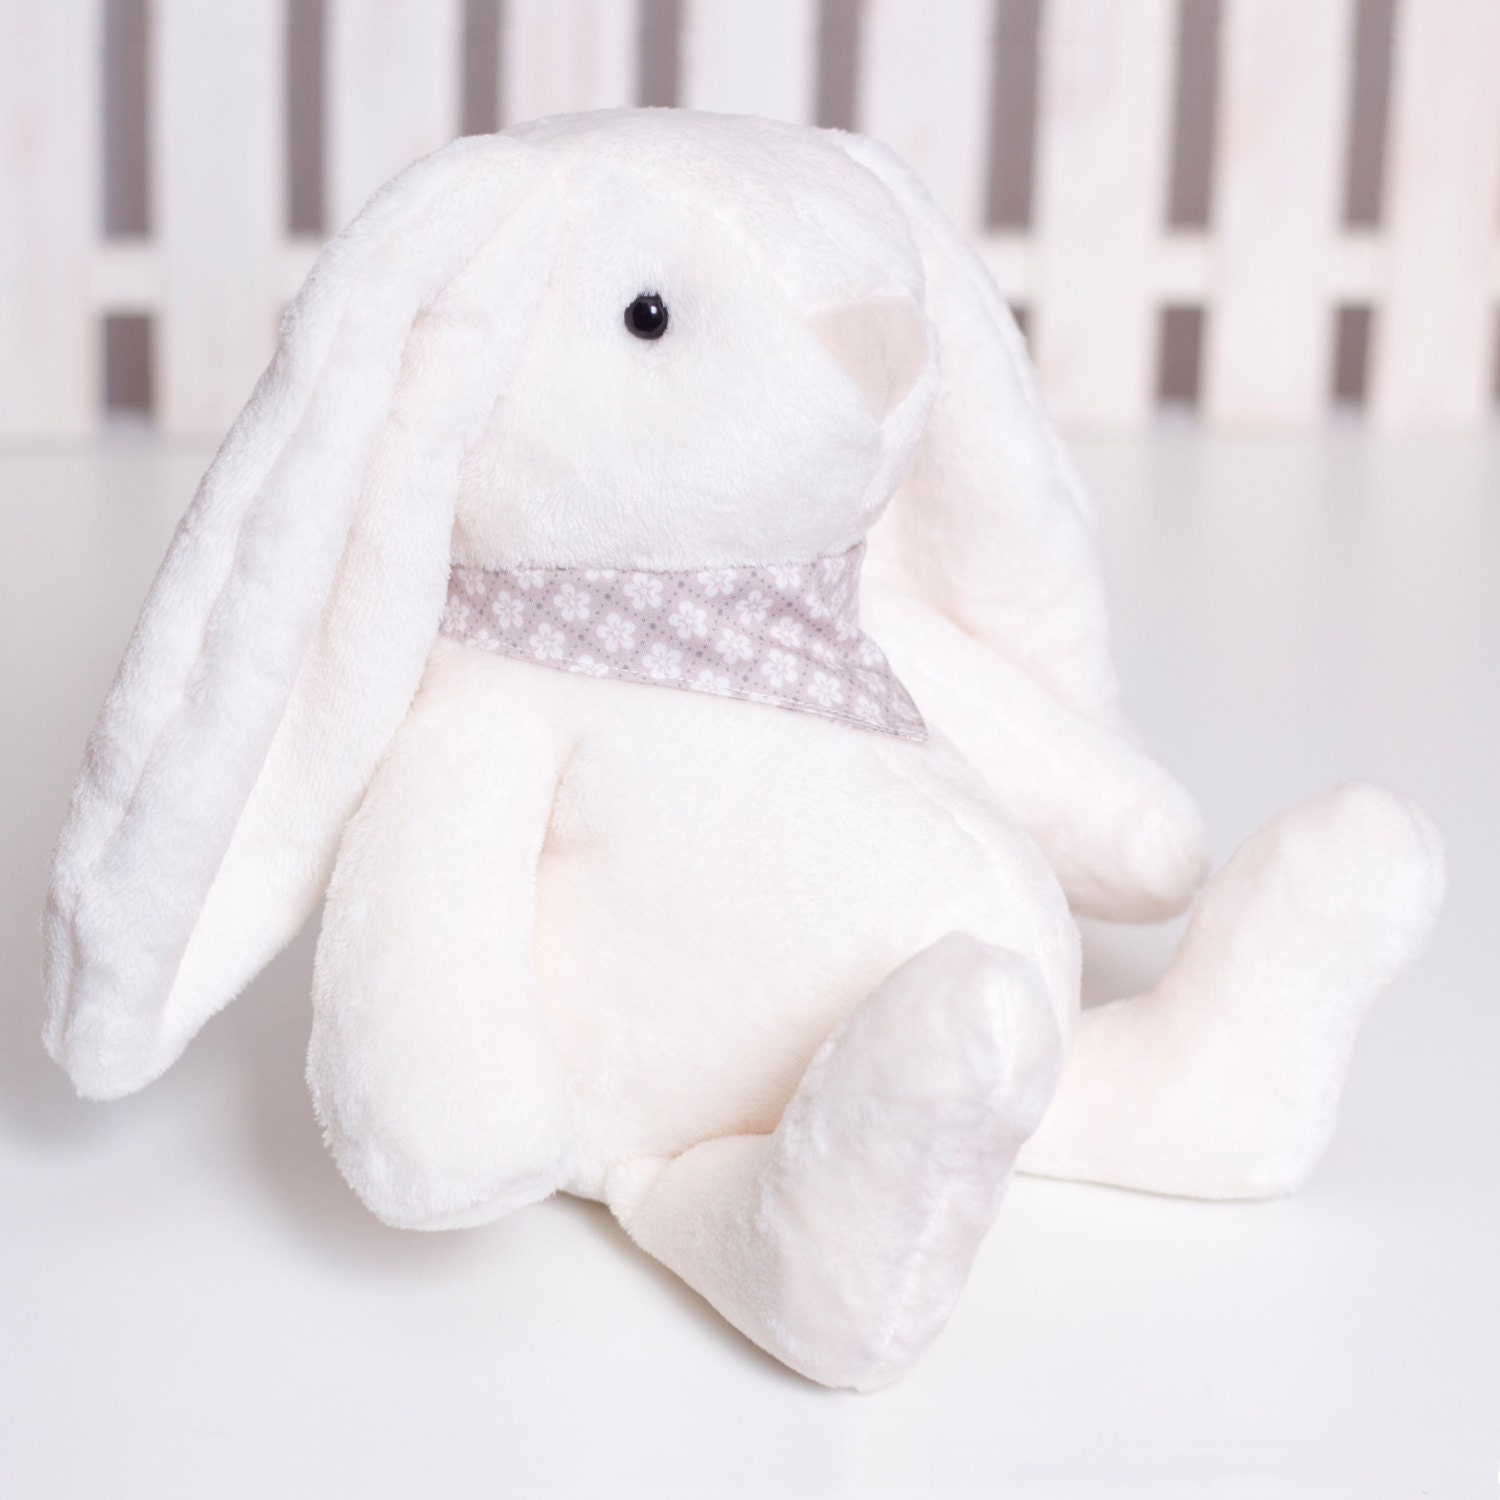 bunny template for sewing - fluffy bunny sewing pattern soft animal pdf tutorial